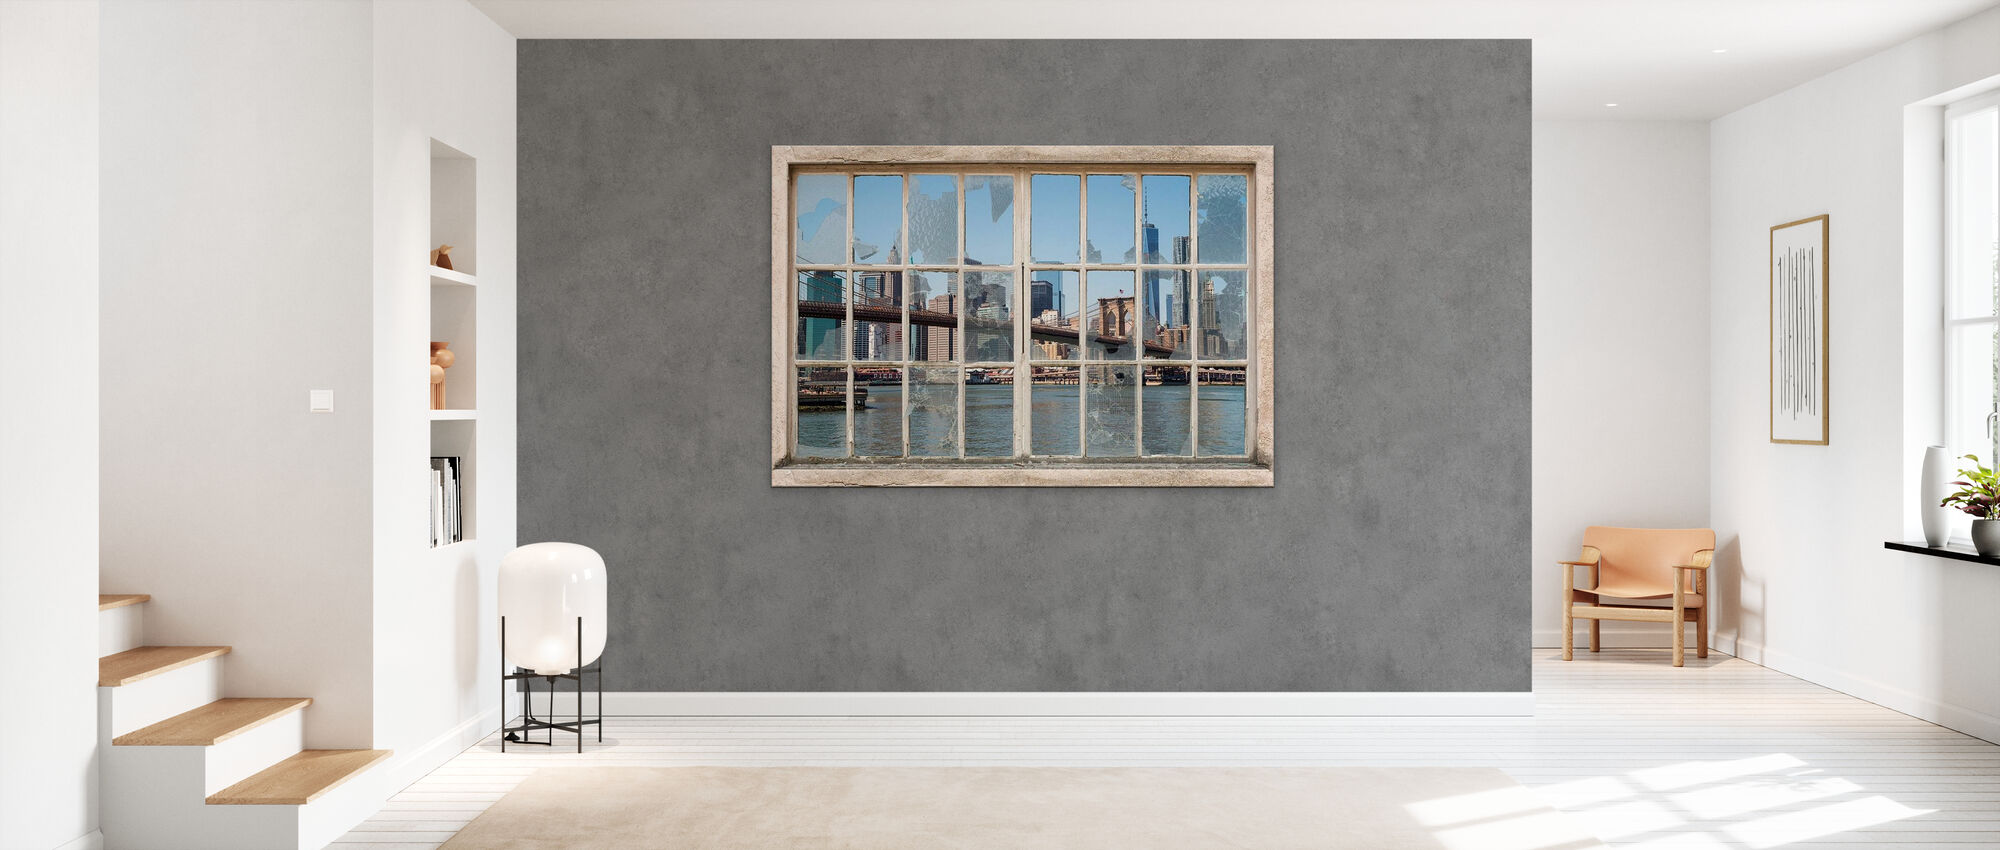 View from Basement Windows - Brooklyn Bridge - Wallpaper - Hallway